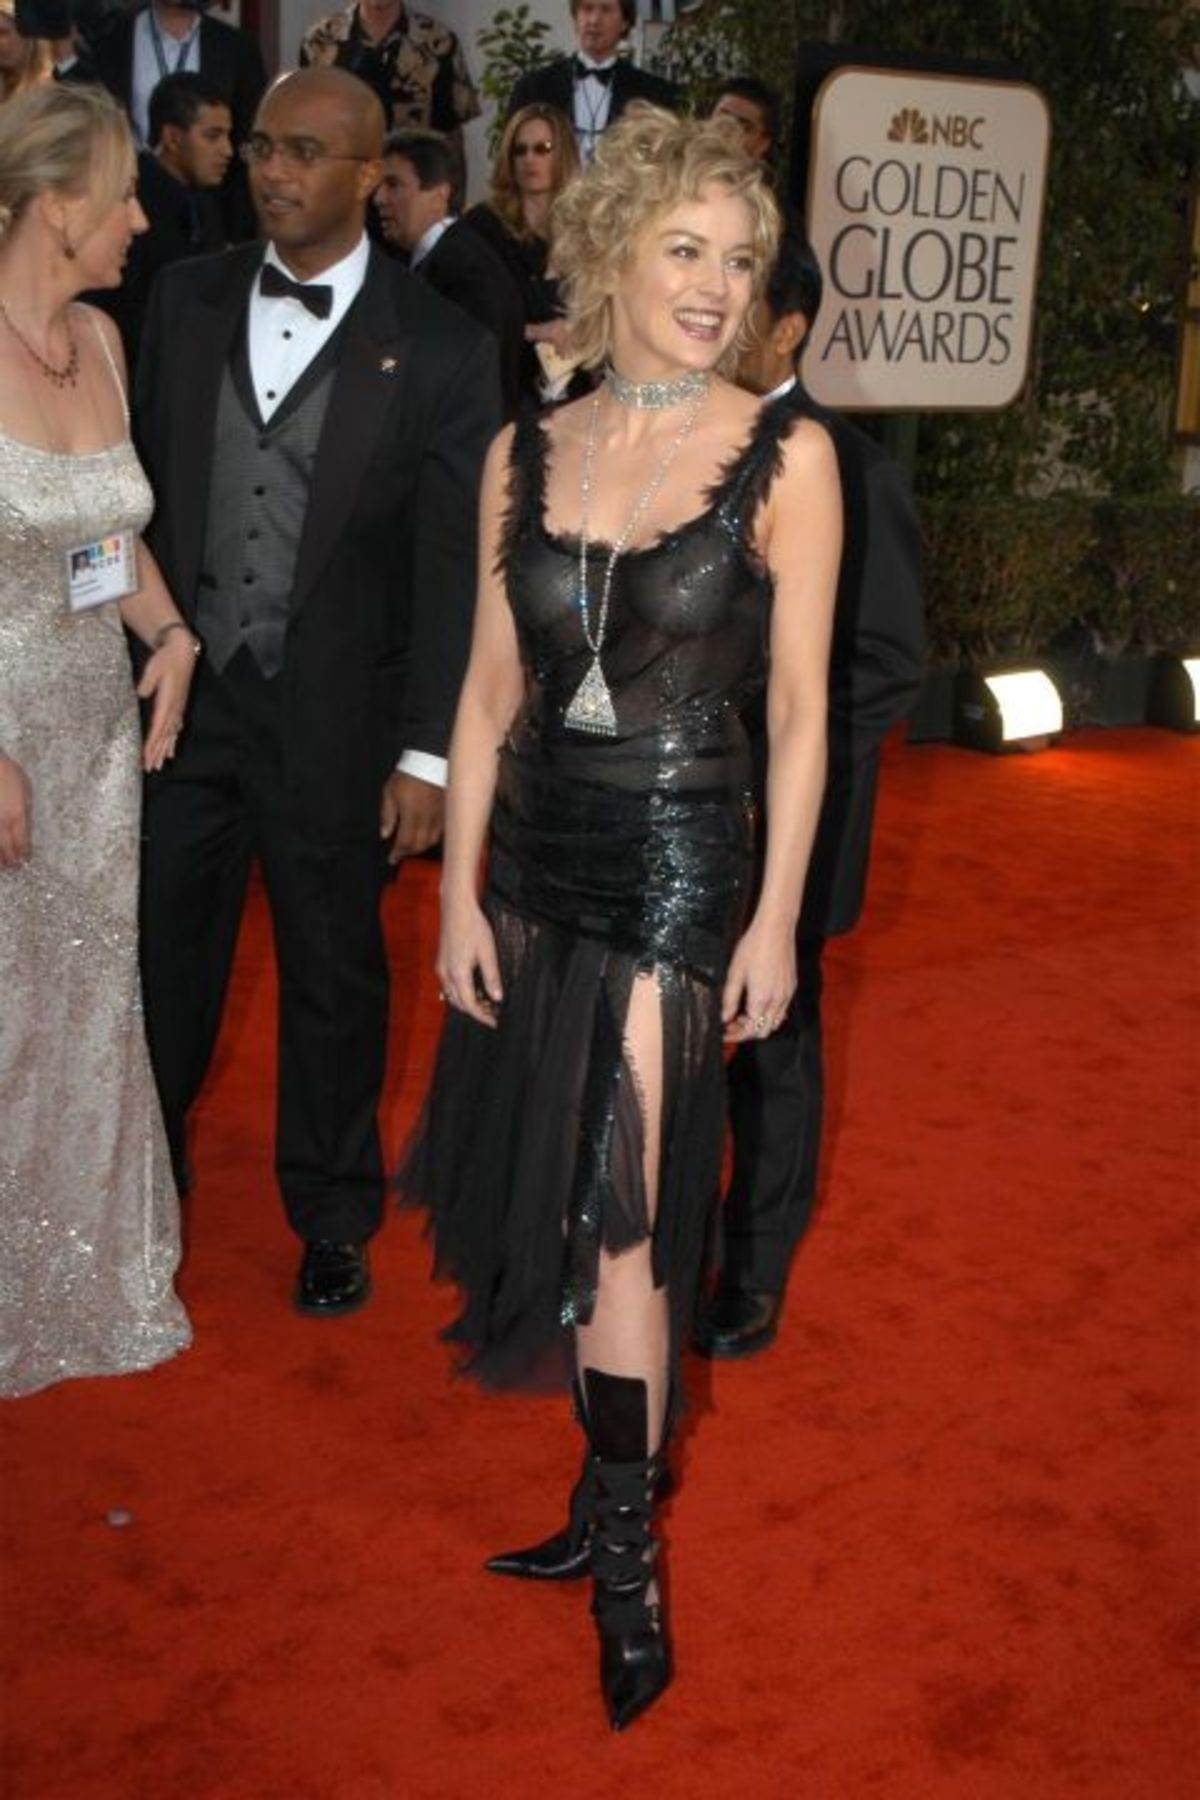 hbz-worst-gg-dresses-2003-gettyimages-109936900